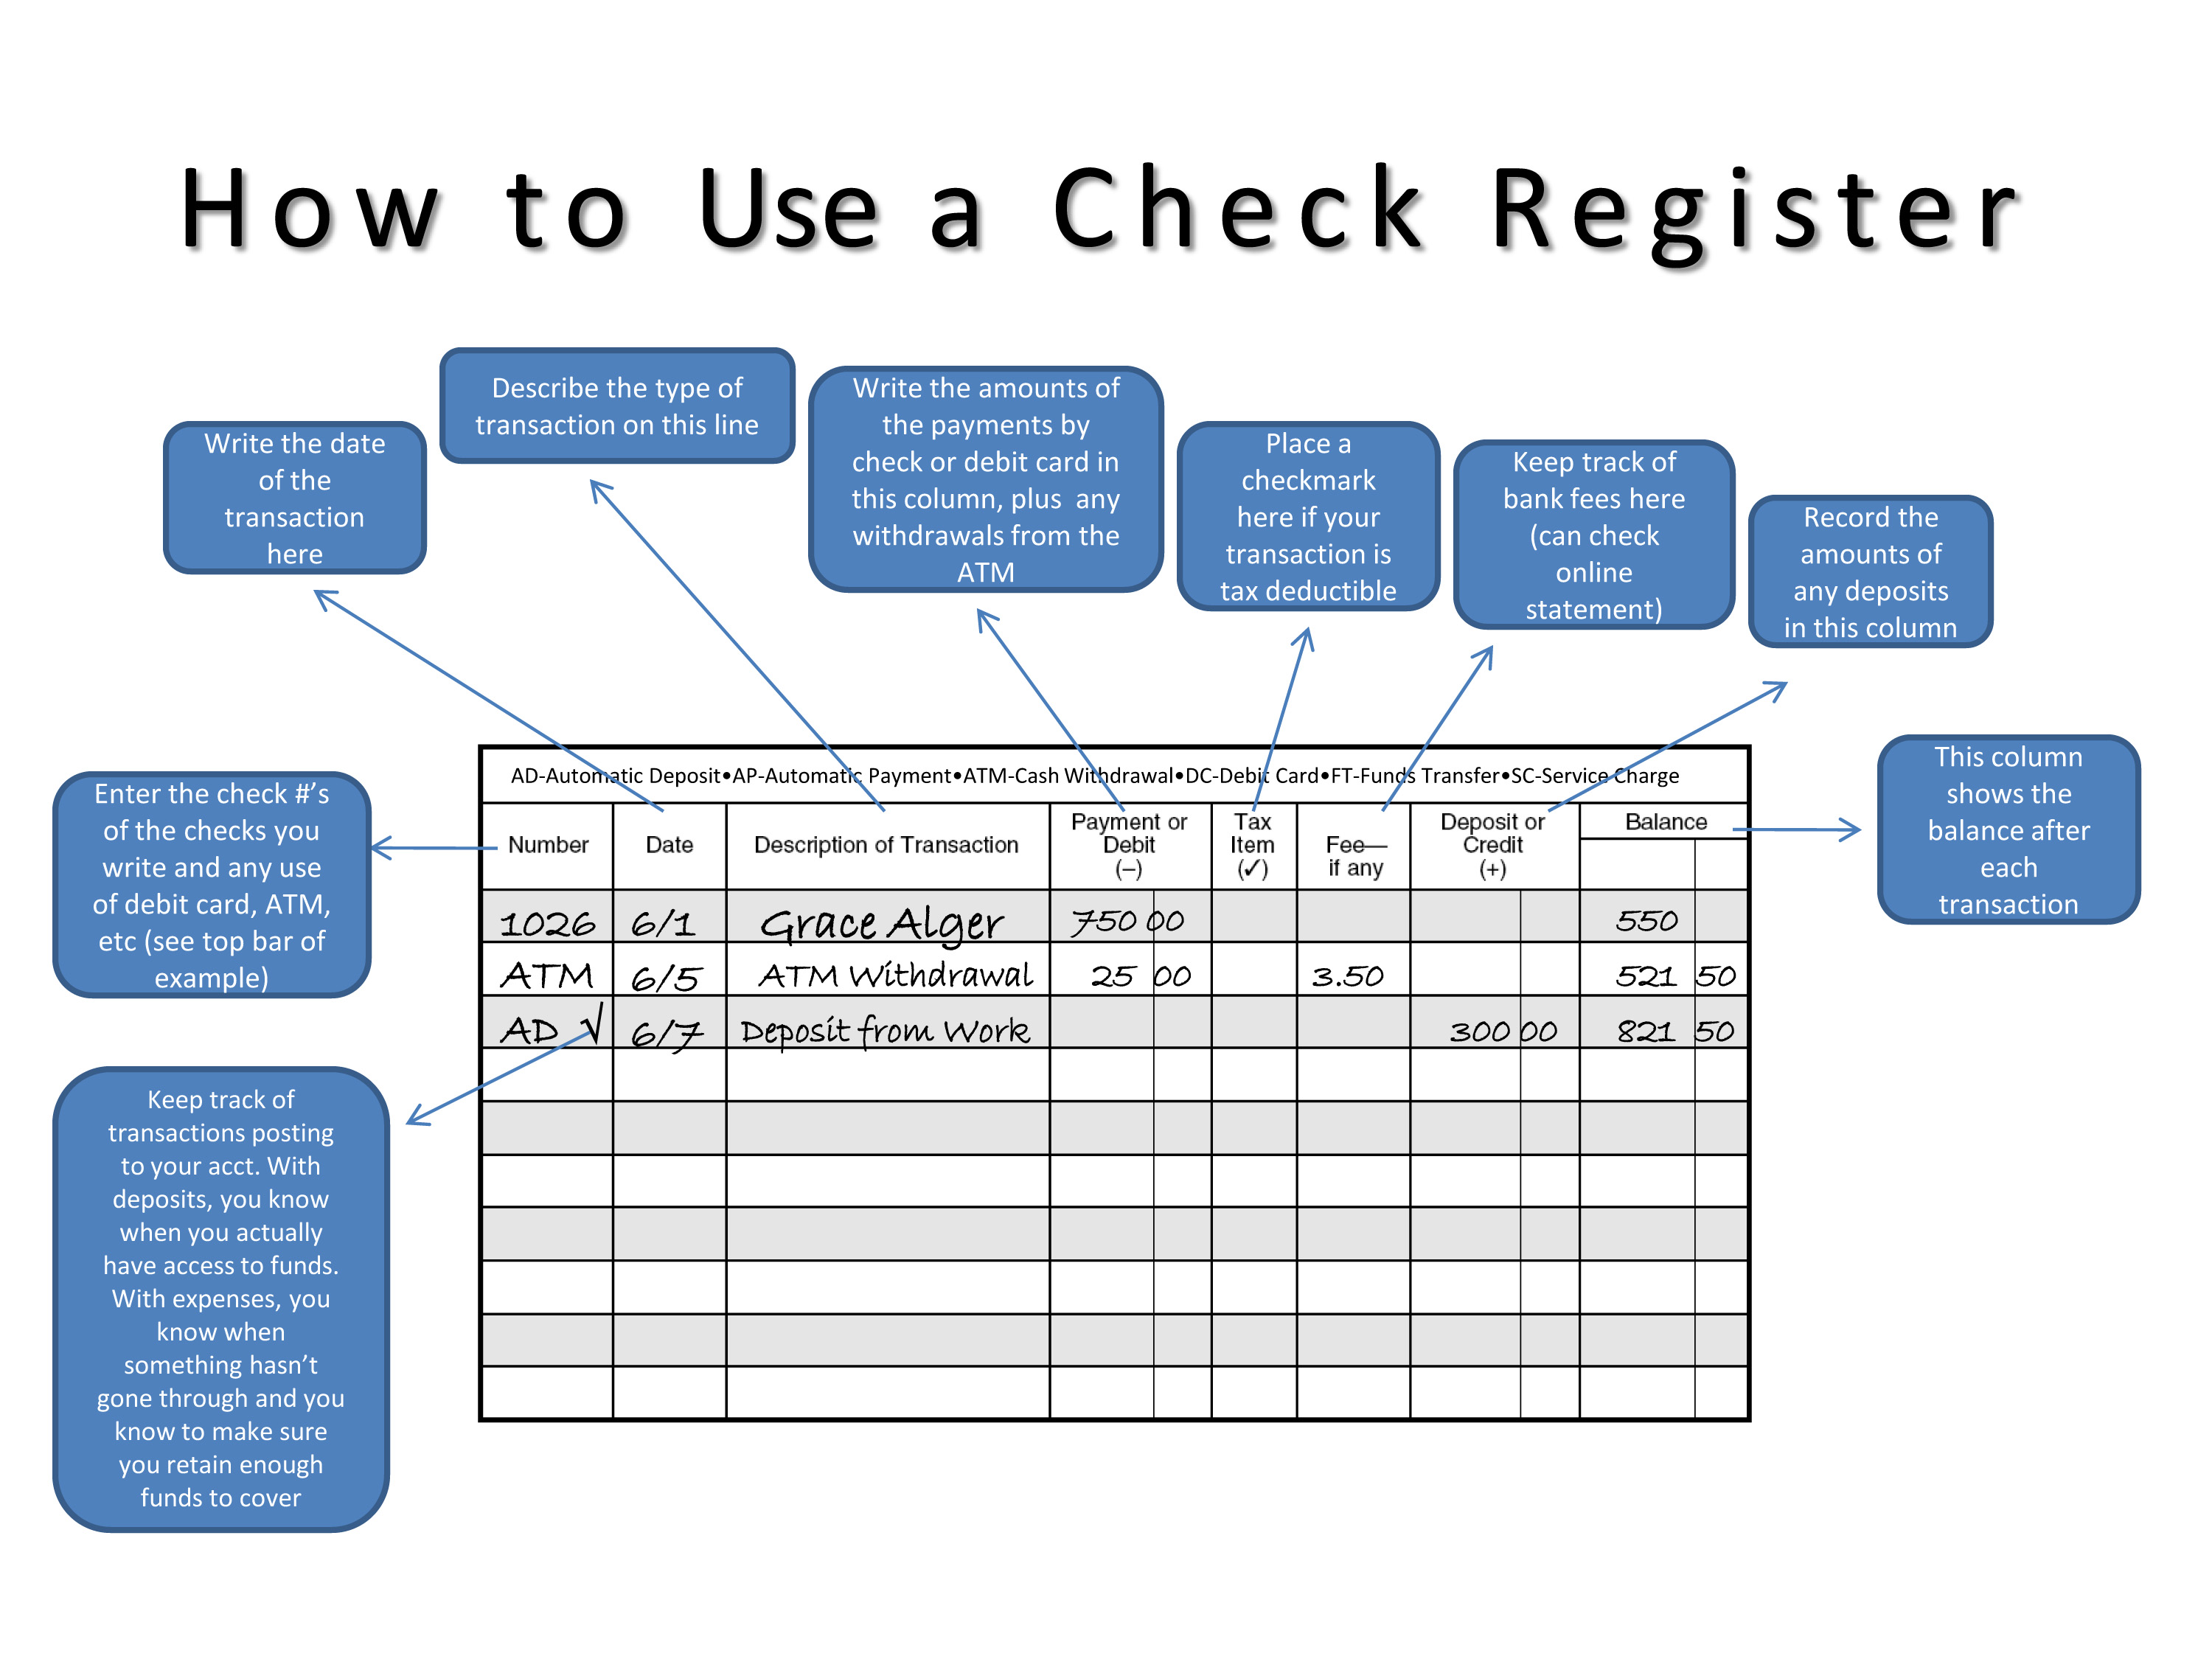 How To Use A Check Register